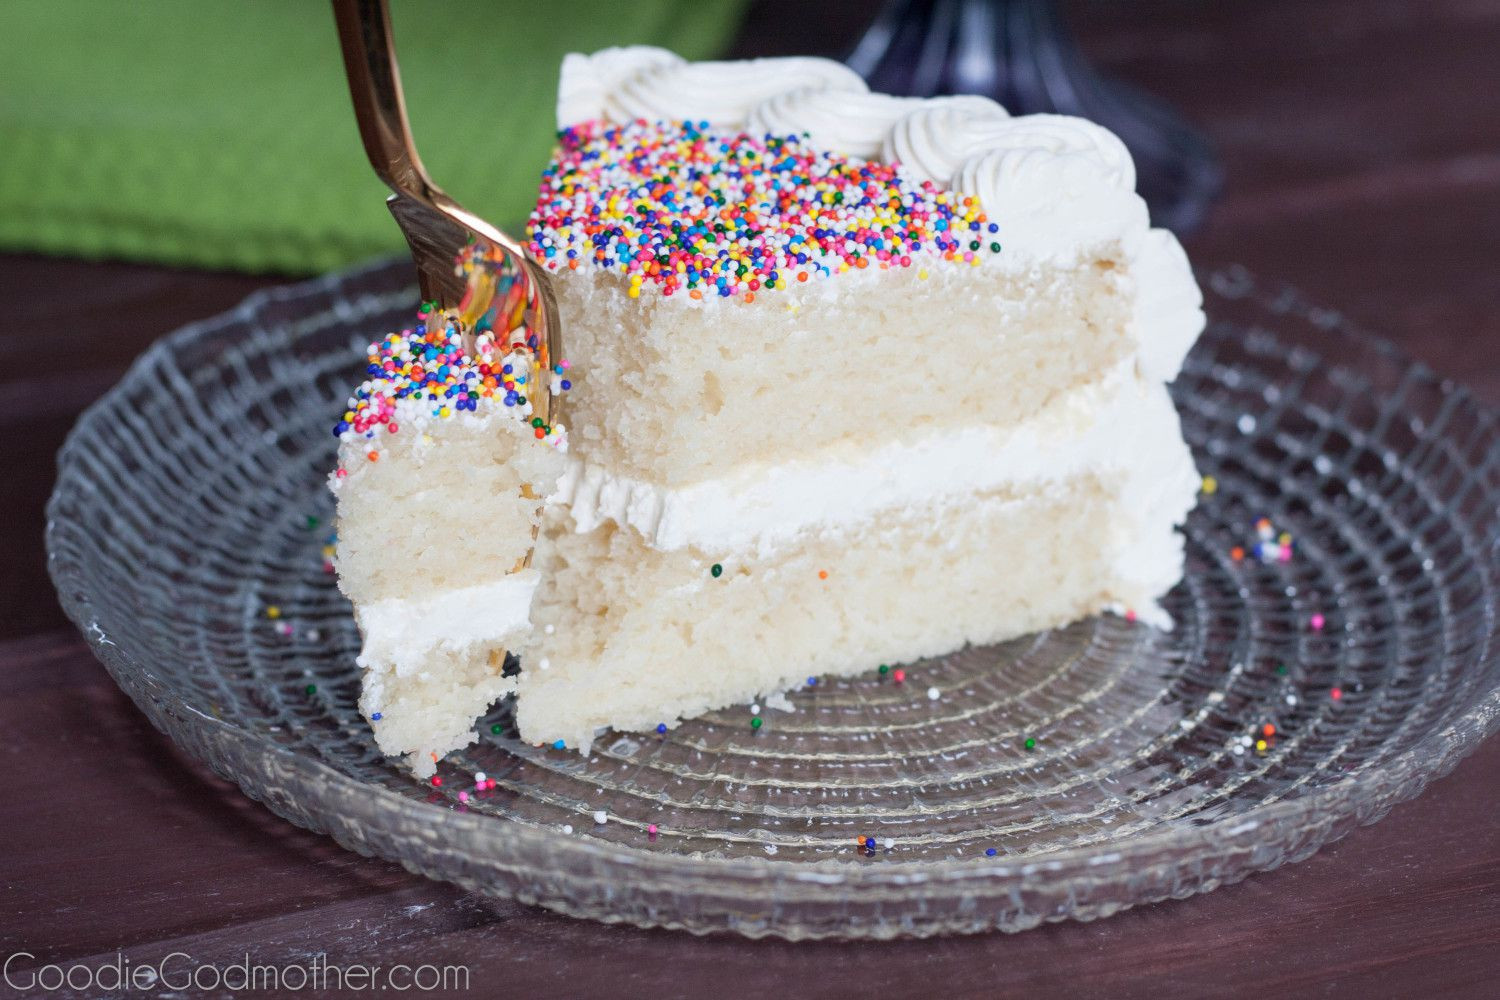 Recipes For Wedding Cakes  White Cake Recipe FROM SCRATCH Goo Godmother A